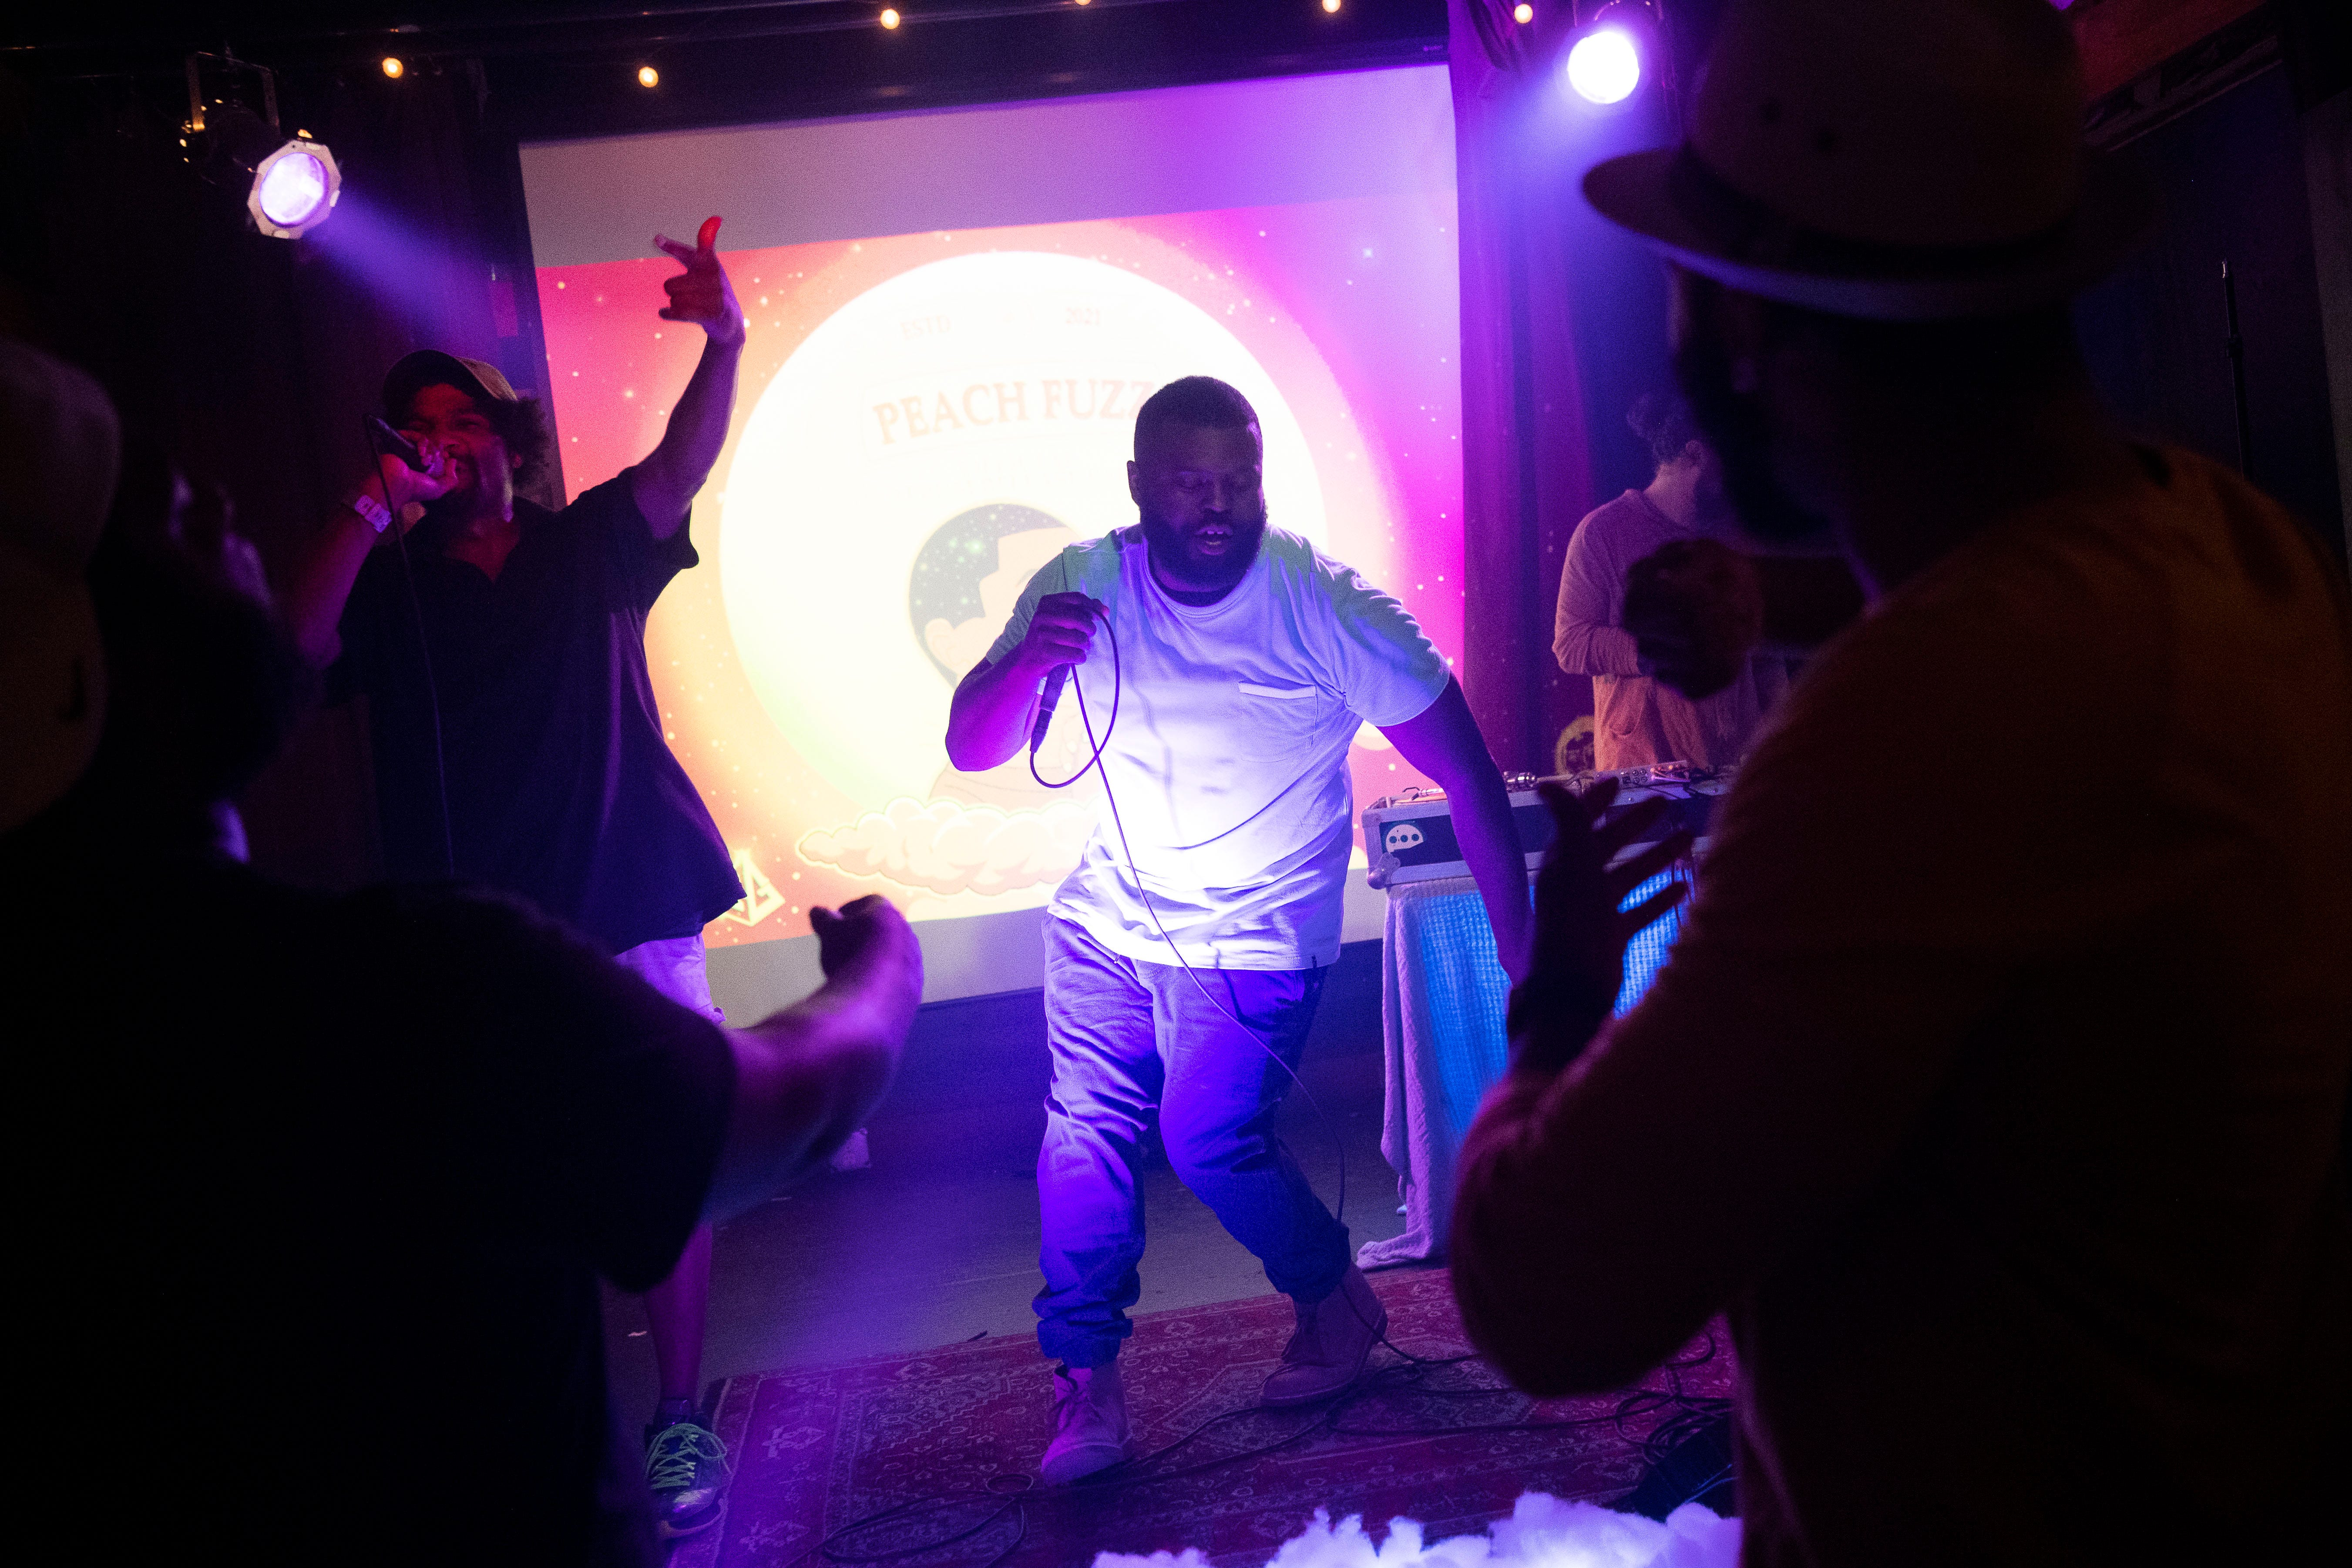 """Alongside Colby Earles (left), Jarius Bush performs at The Pilot Light to promote """"Peach Fuzz,"""" the first installment in his three-part series of albums about growing up. Hip-hop, however, has been plateauing in Knoxville for years, Earles said, leaving local artists scrambling to find ways to promote their careers and the overall scene."""